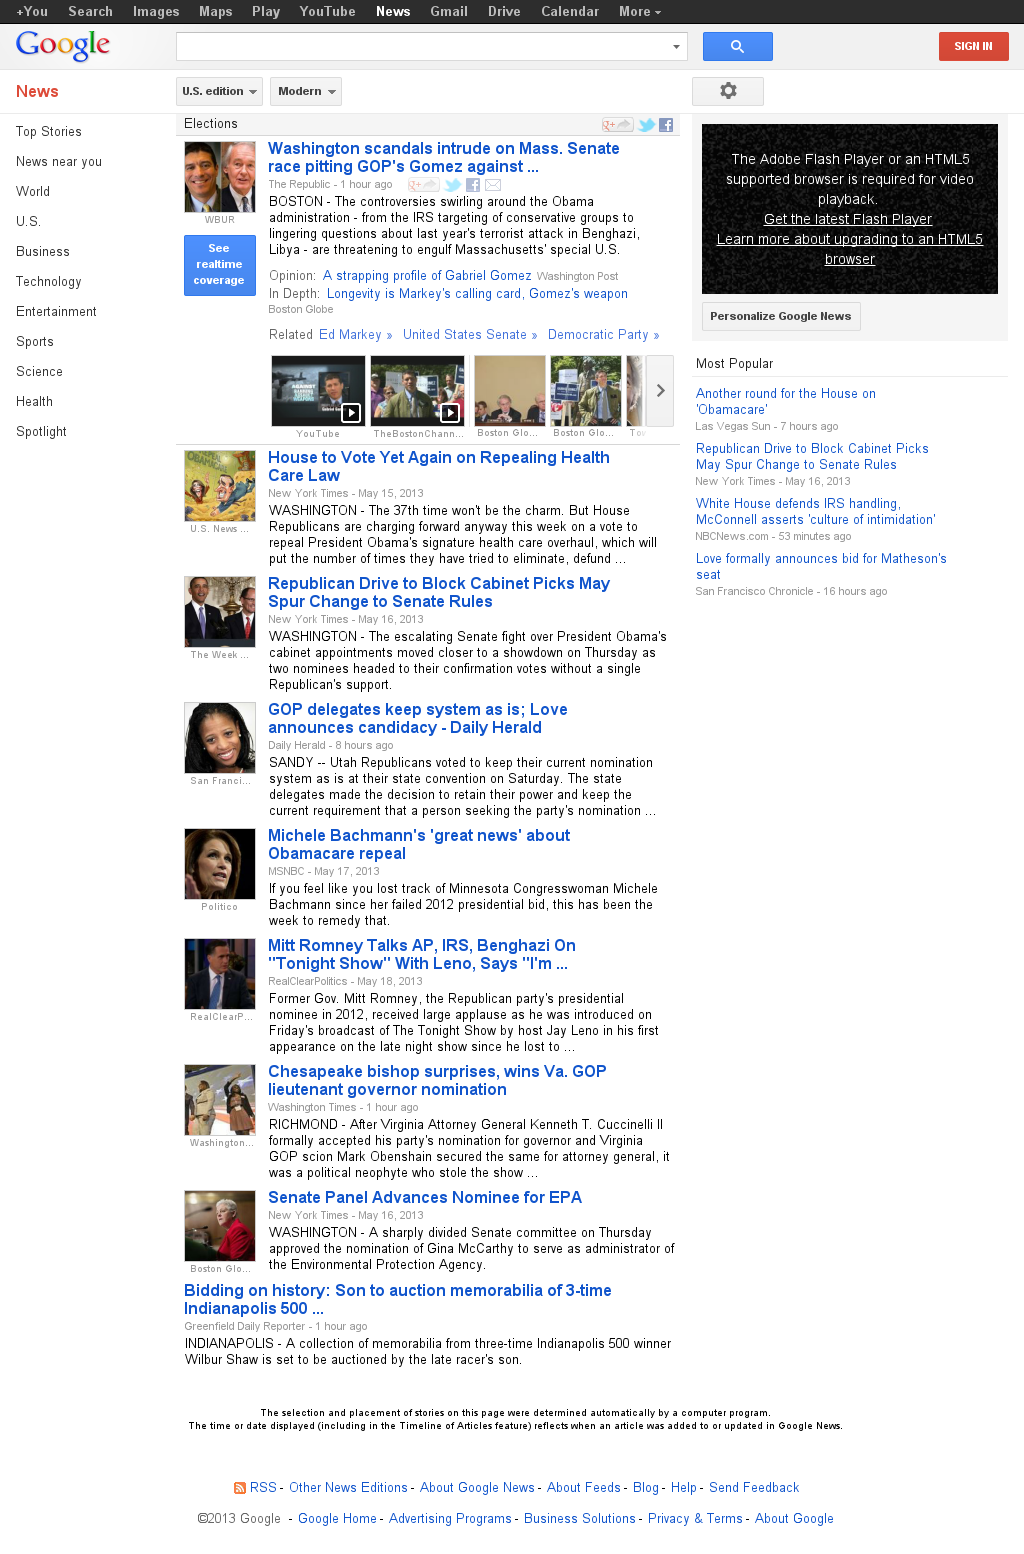 Google News: Elections at Sunday May 19, 2013, 3:07 p.m. UTC